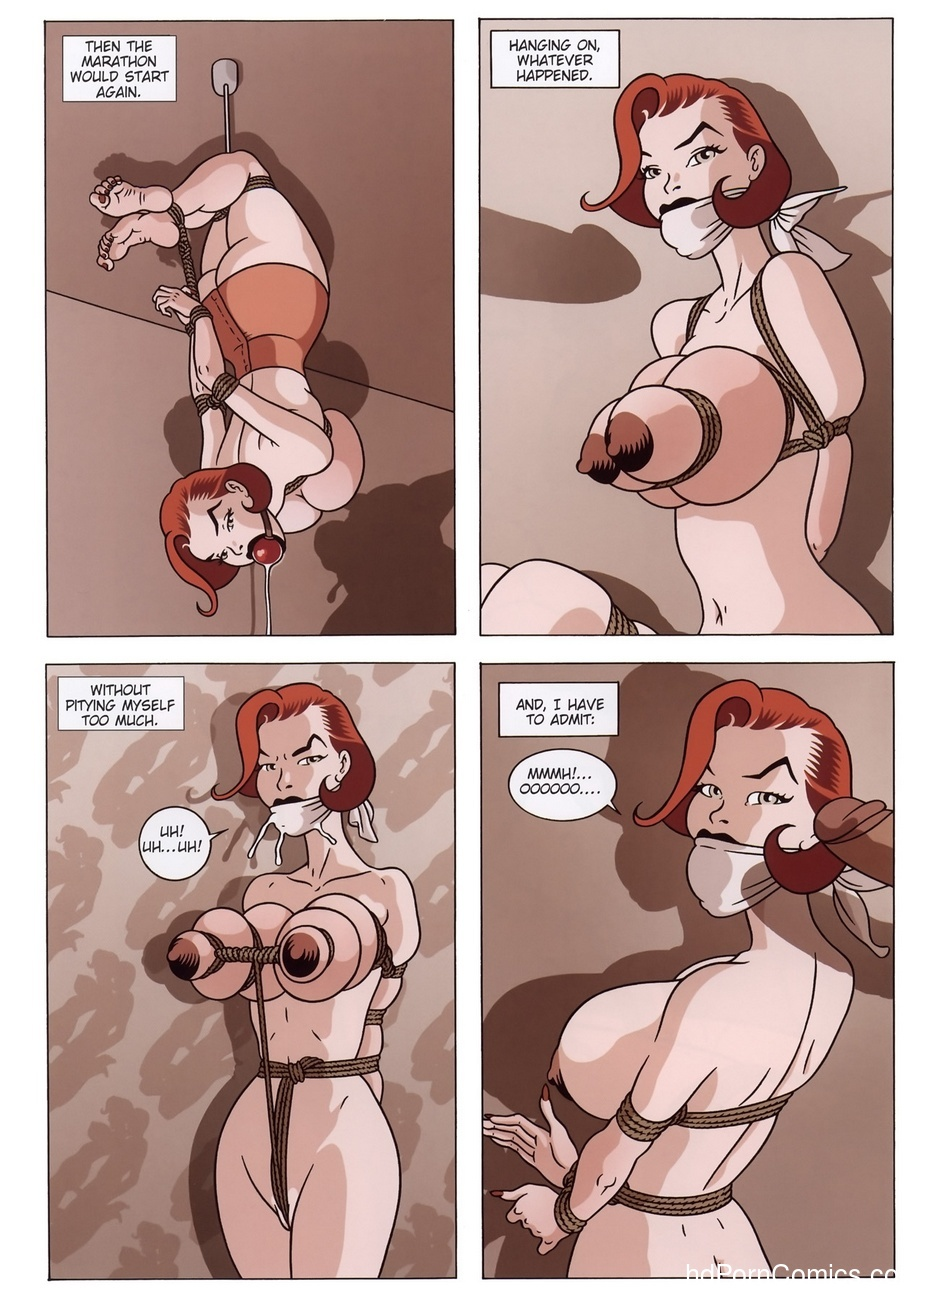 The 110 Blowjobs 18 free sex comic